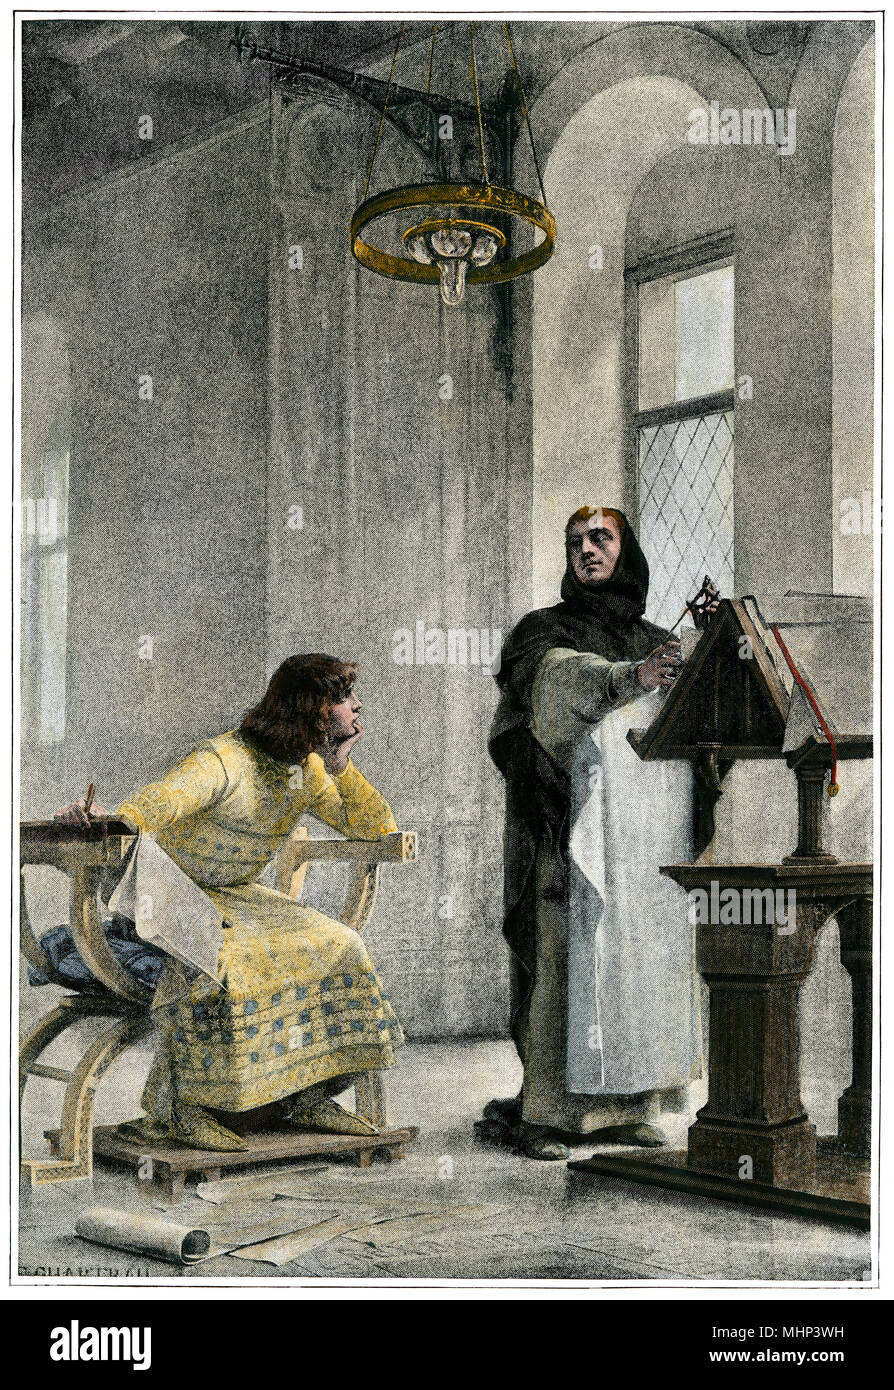 Education of Louis IX (Saint Louis), King of France. Hand-colored halftone of an illustration Stock Photo